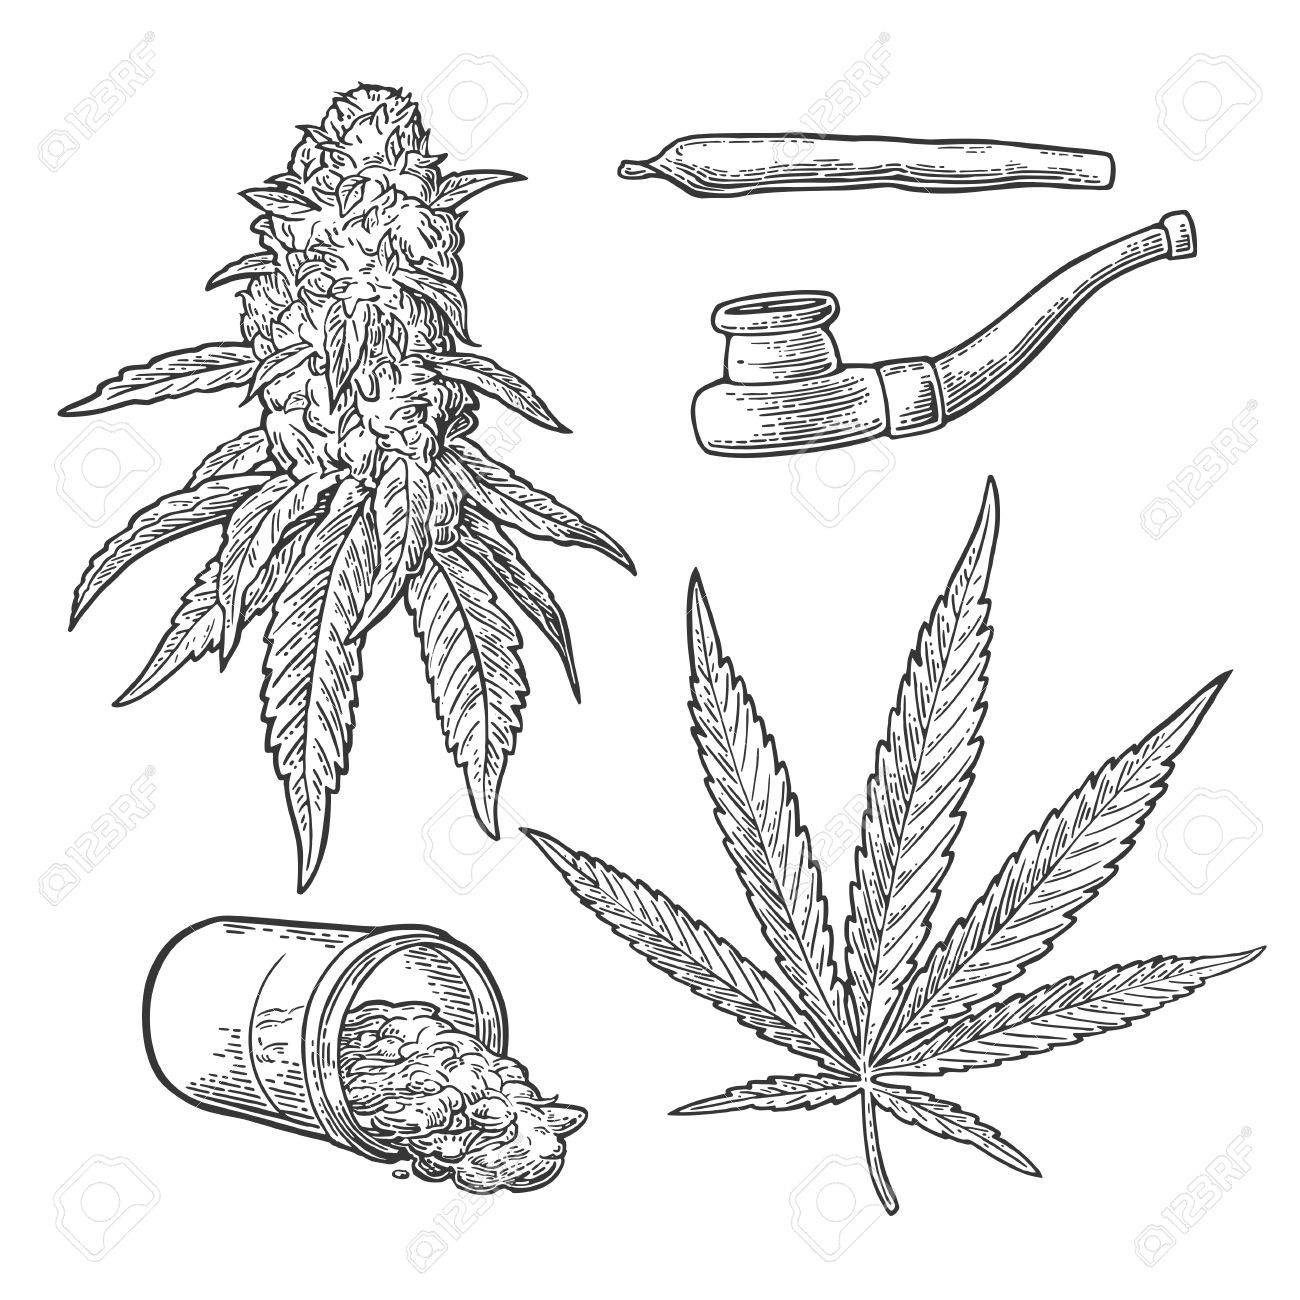 Marijuana buds, leaves, jar, cigarettes and pipe for smoking. Hand drawn design element. Vintage black vector engraving illustration for label, poster, web. Isolated on white background - 69093739